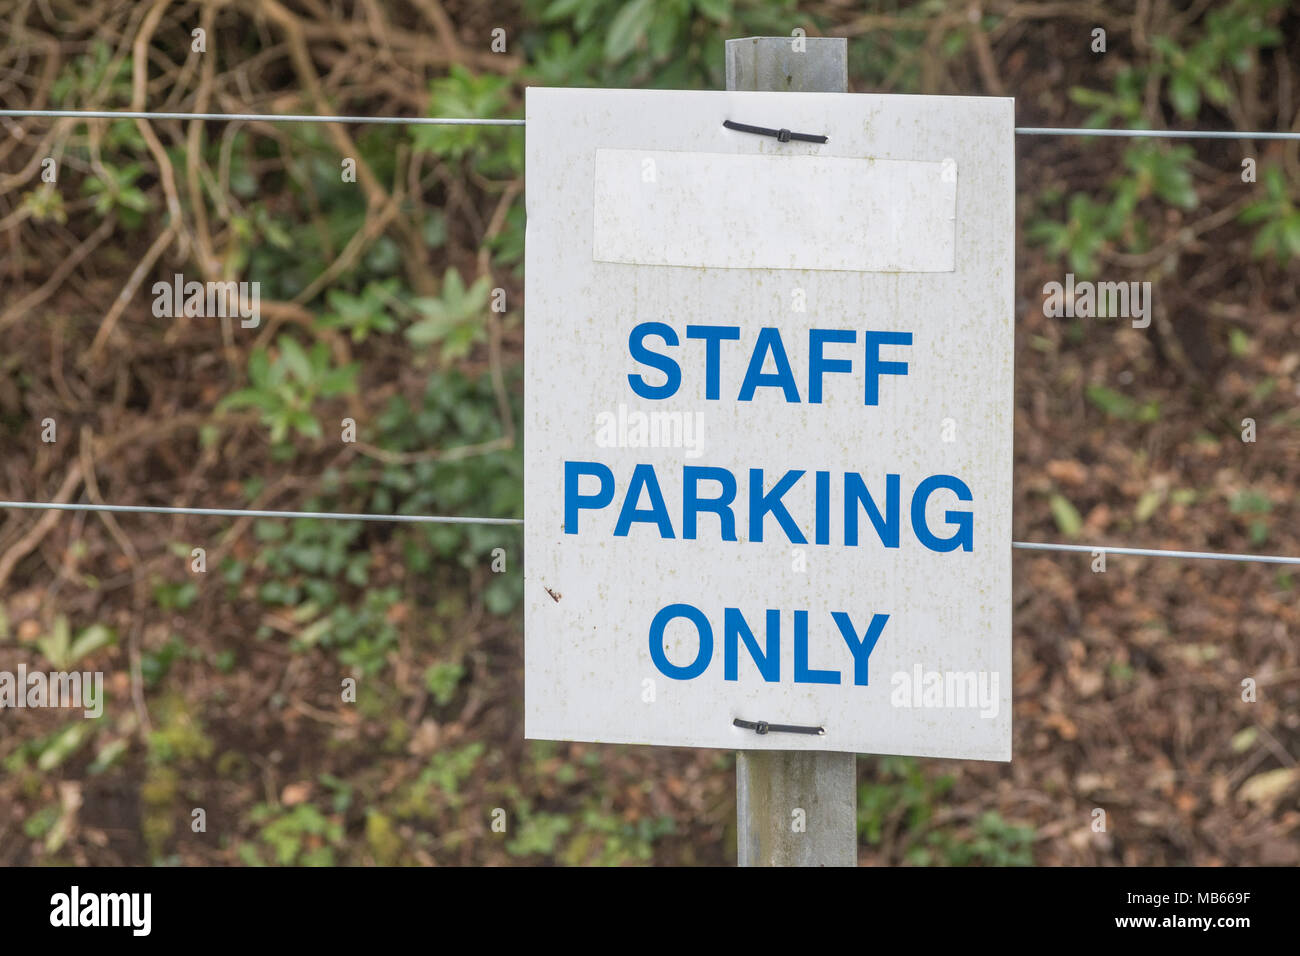 Staff Parking Only sign - metaphor / allegory for 'chosen few', 'special cases', elitism, favouritism, preferential treatment. - Stock Image